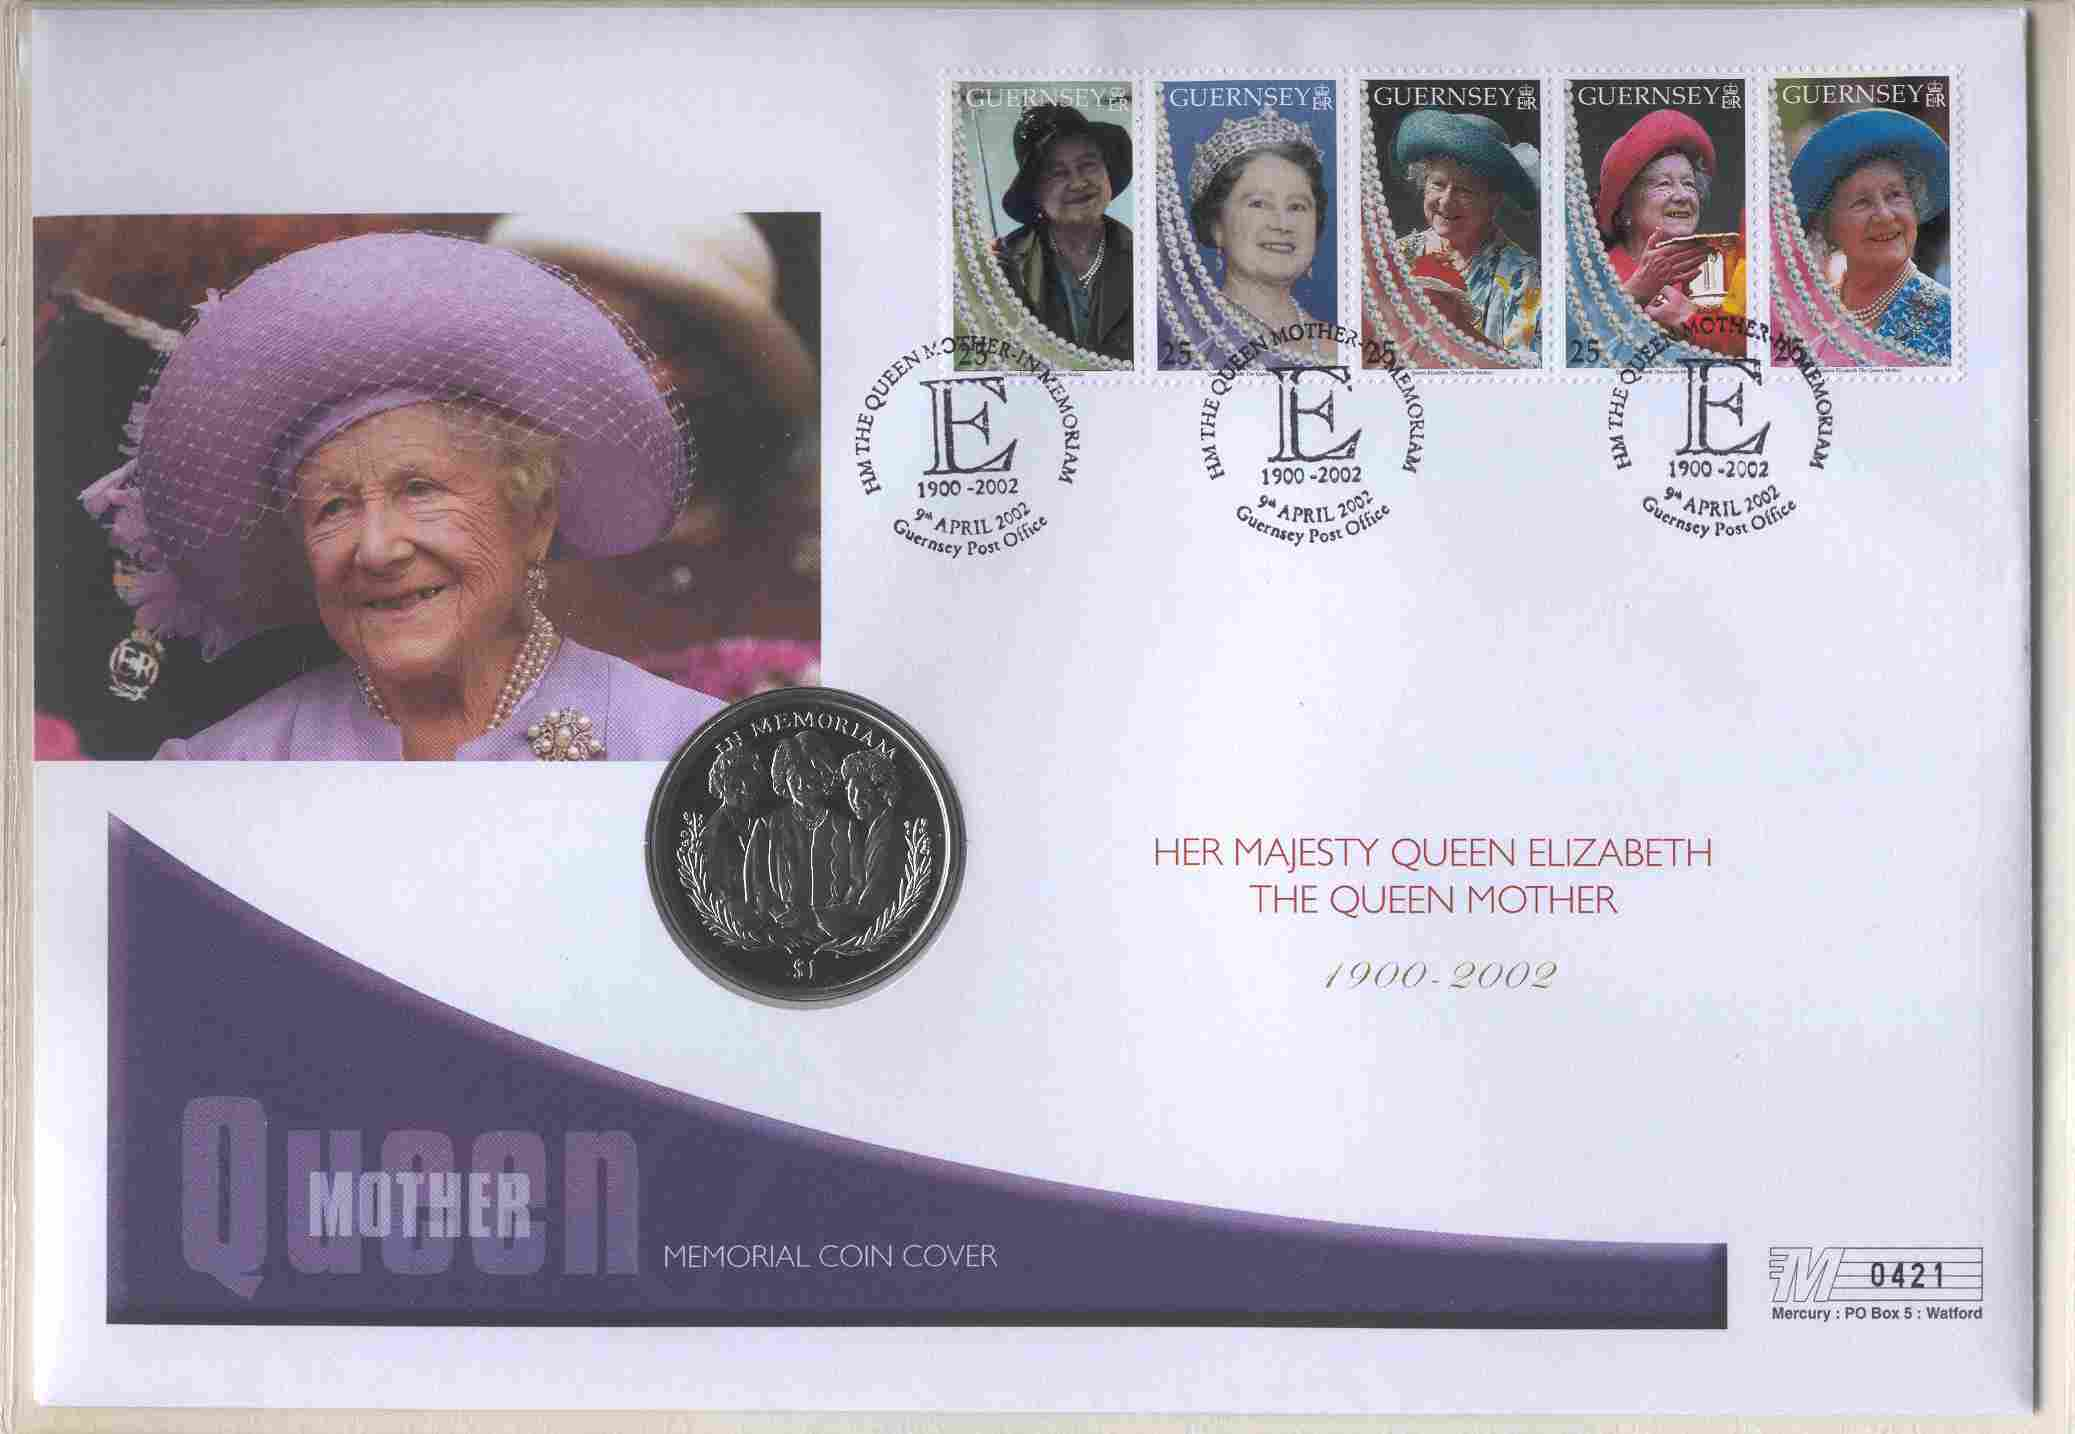 2002 Guernsey - Queen Mother Memoriam Crown - Coin Cover (1)